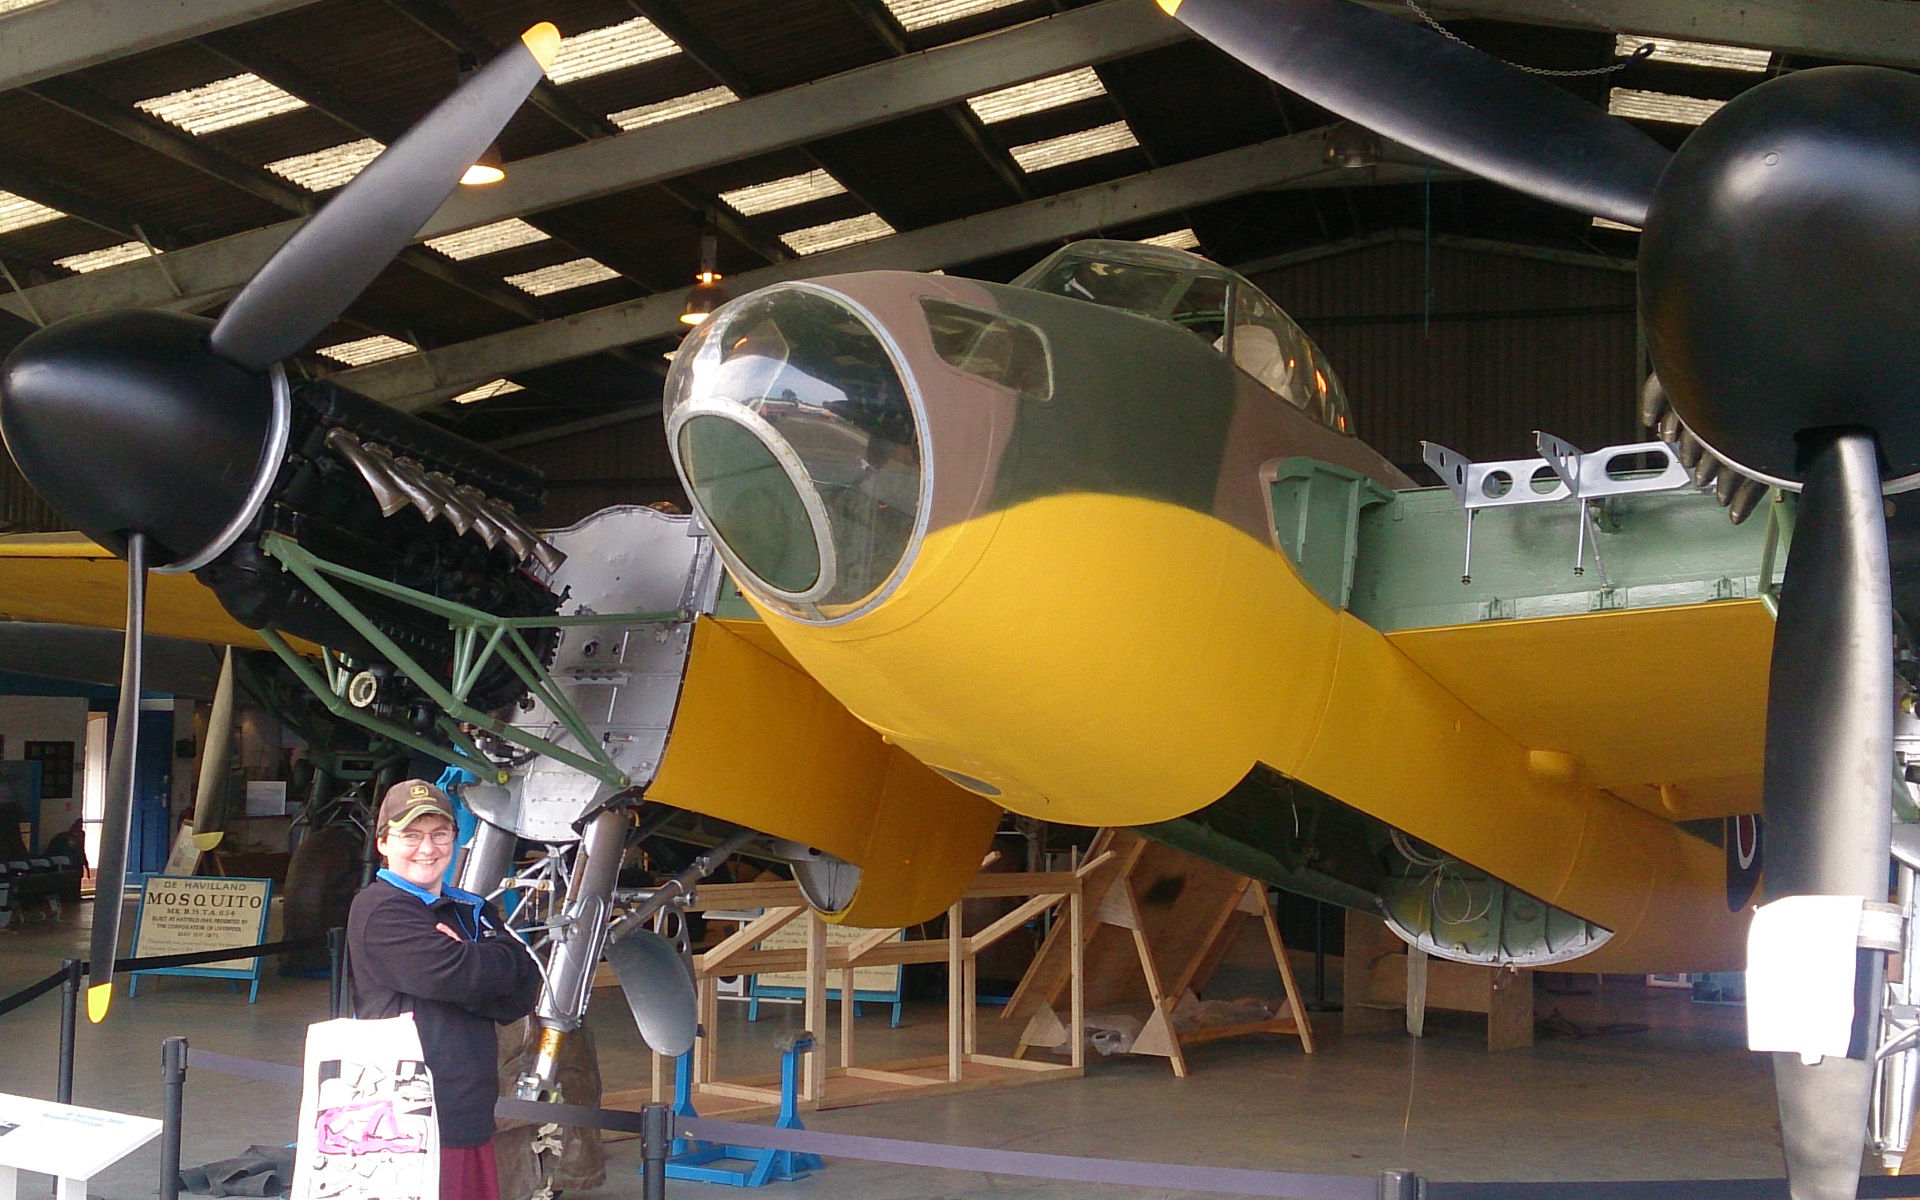 Sandra Lindsey with DeHavilland Mosquito prototype